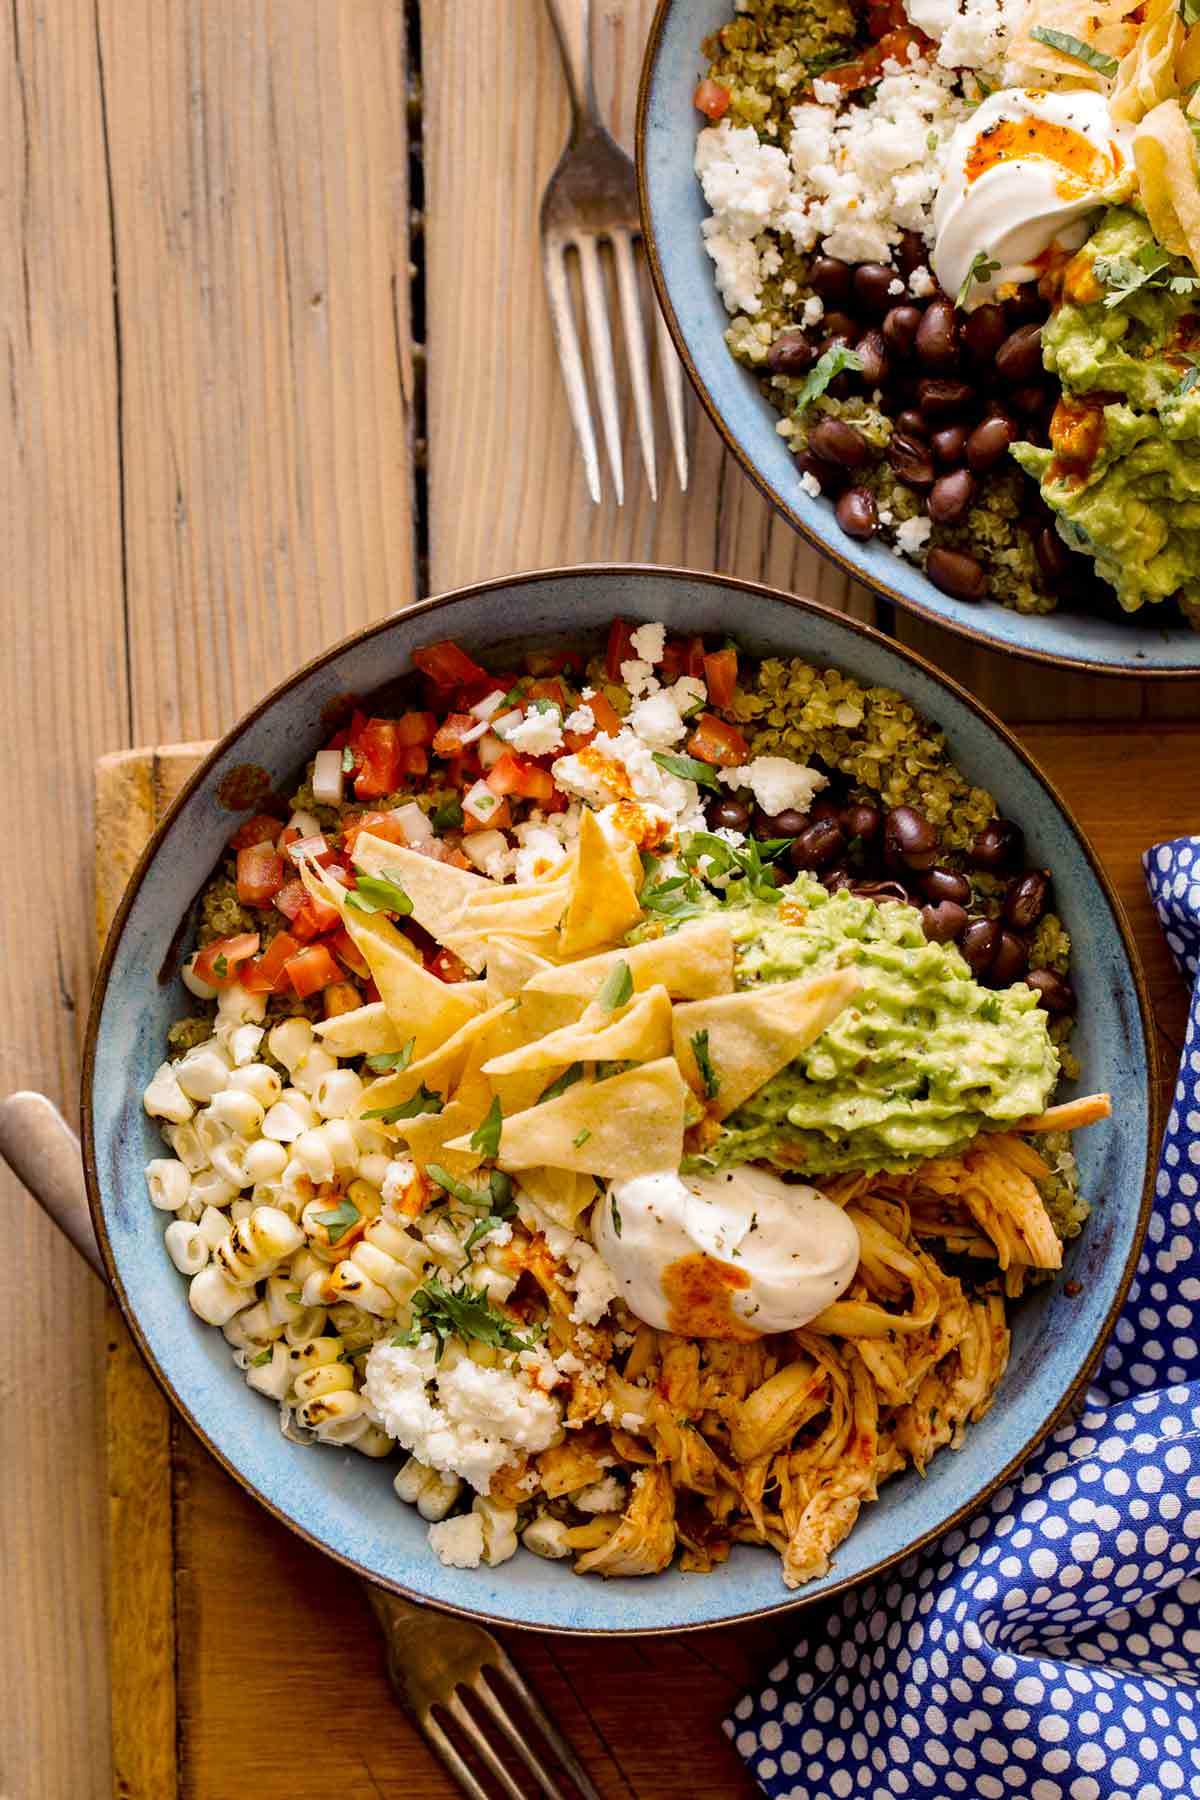 Honey chipotle chicken burrito bowls with forks.